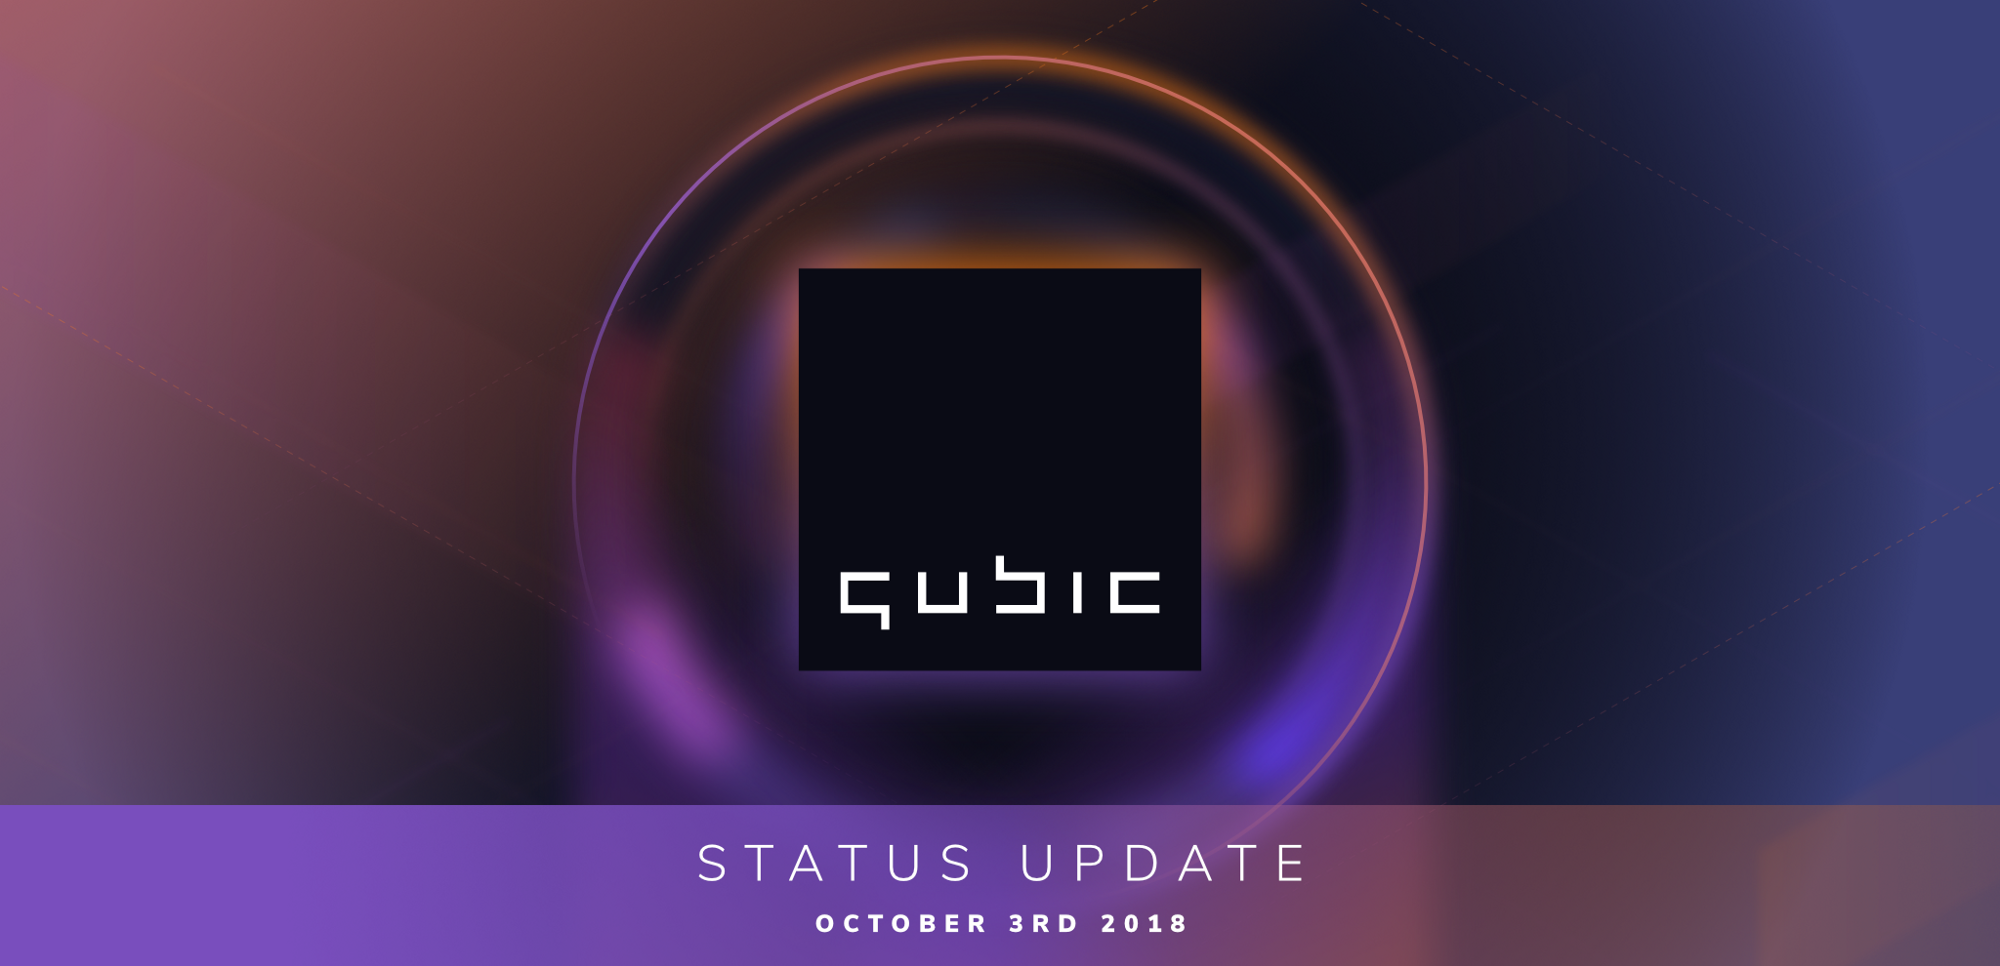 Qubic status update October 3rd 2018